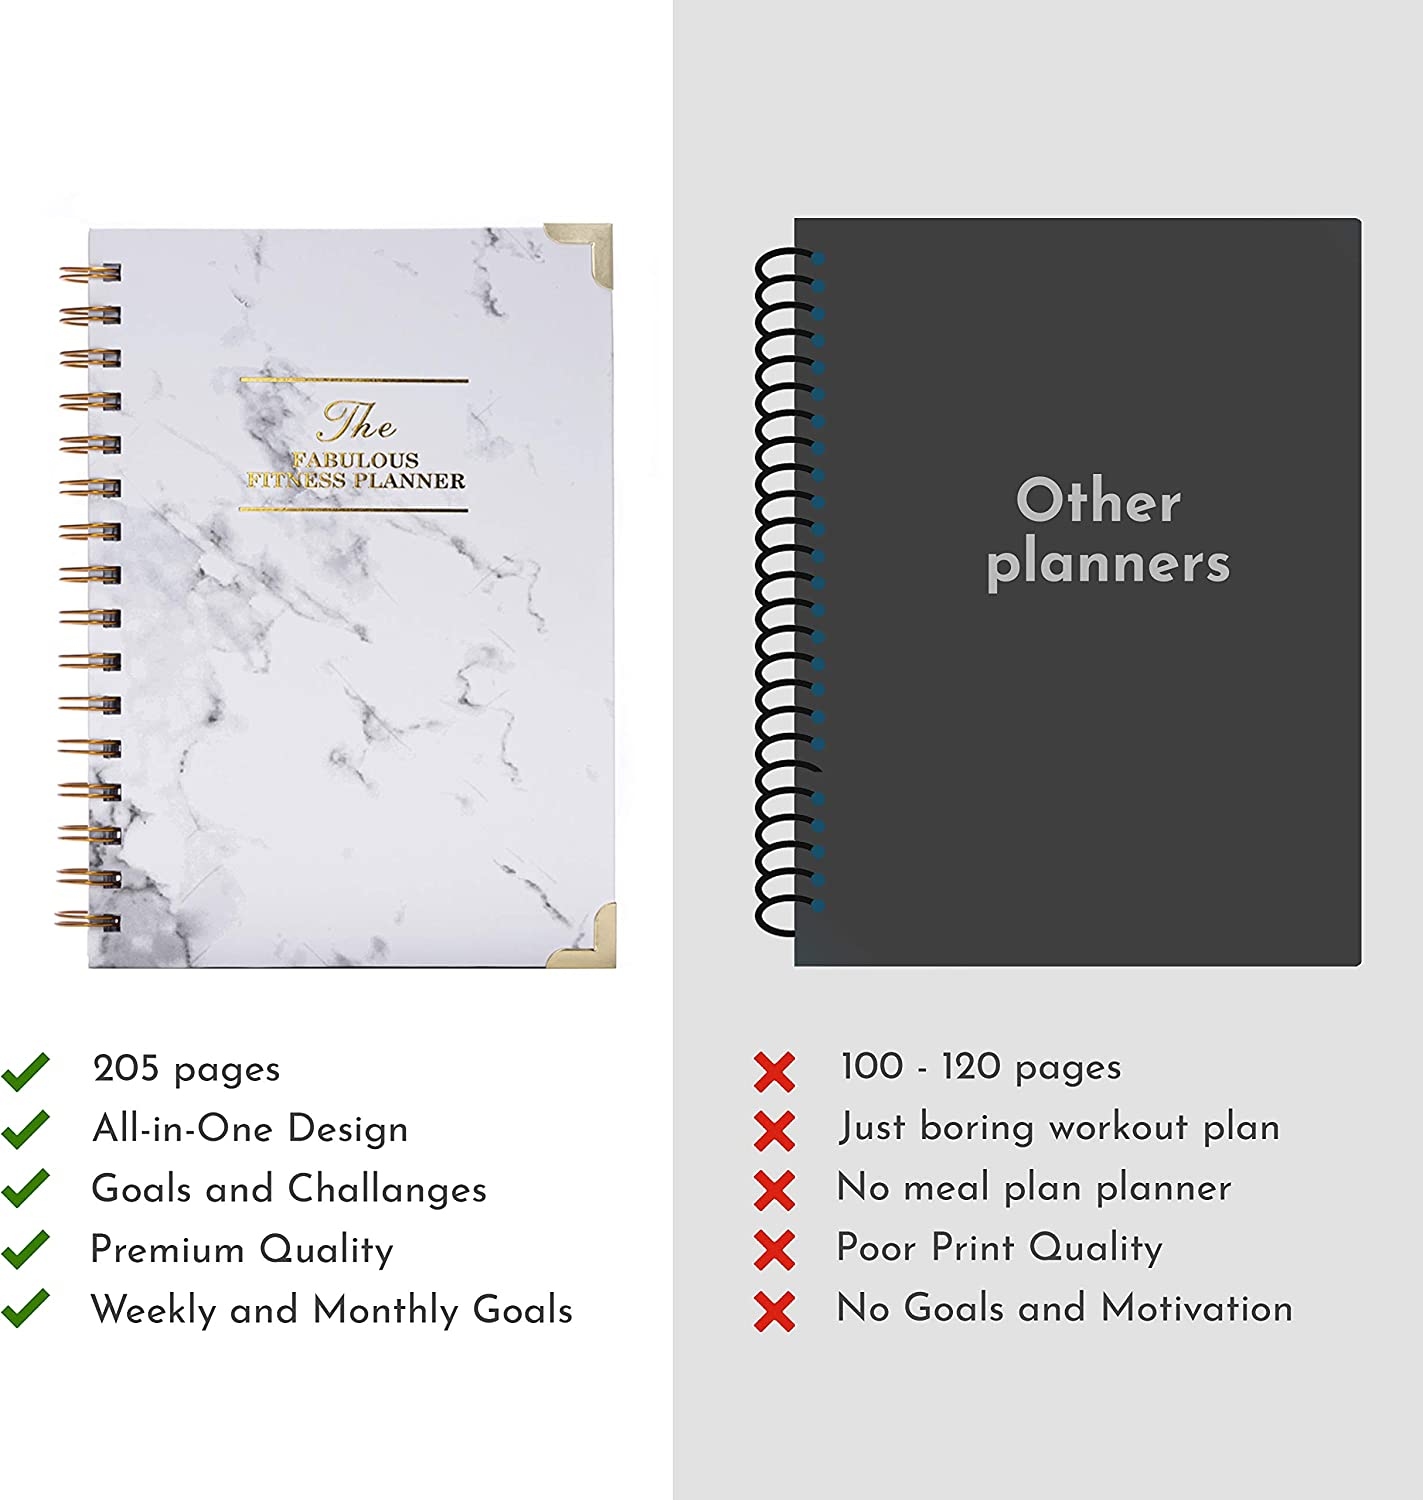 Meal Planner Track Goals Meal Plans Weight Loss Journal and Fitness Planner The Things We Like Workouts